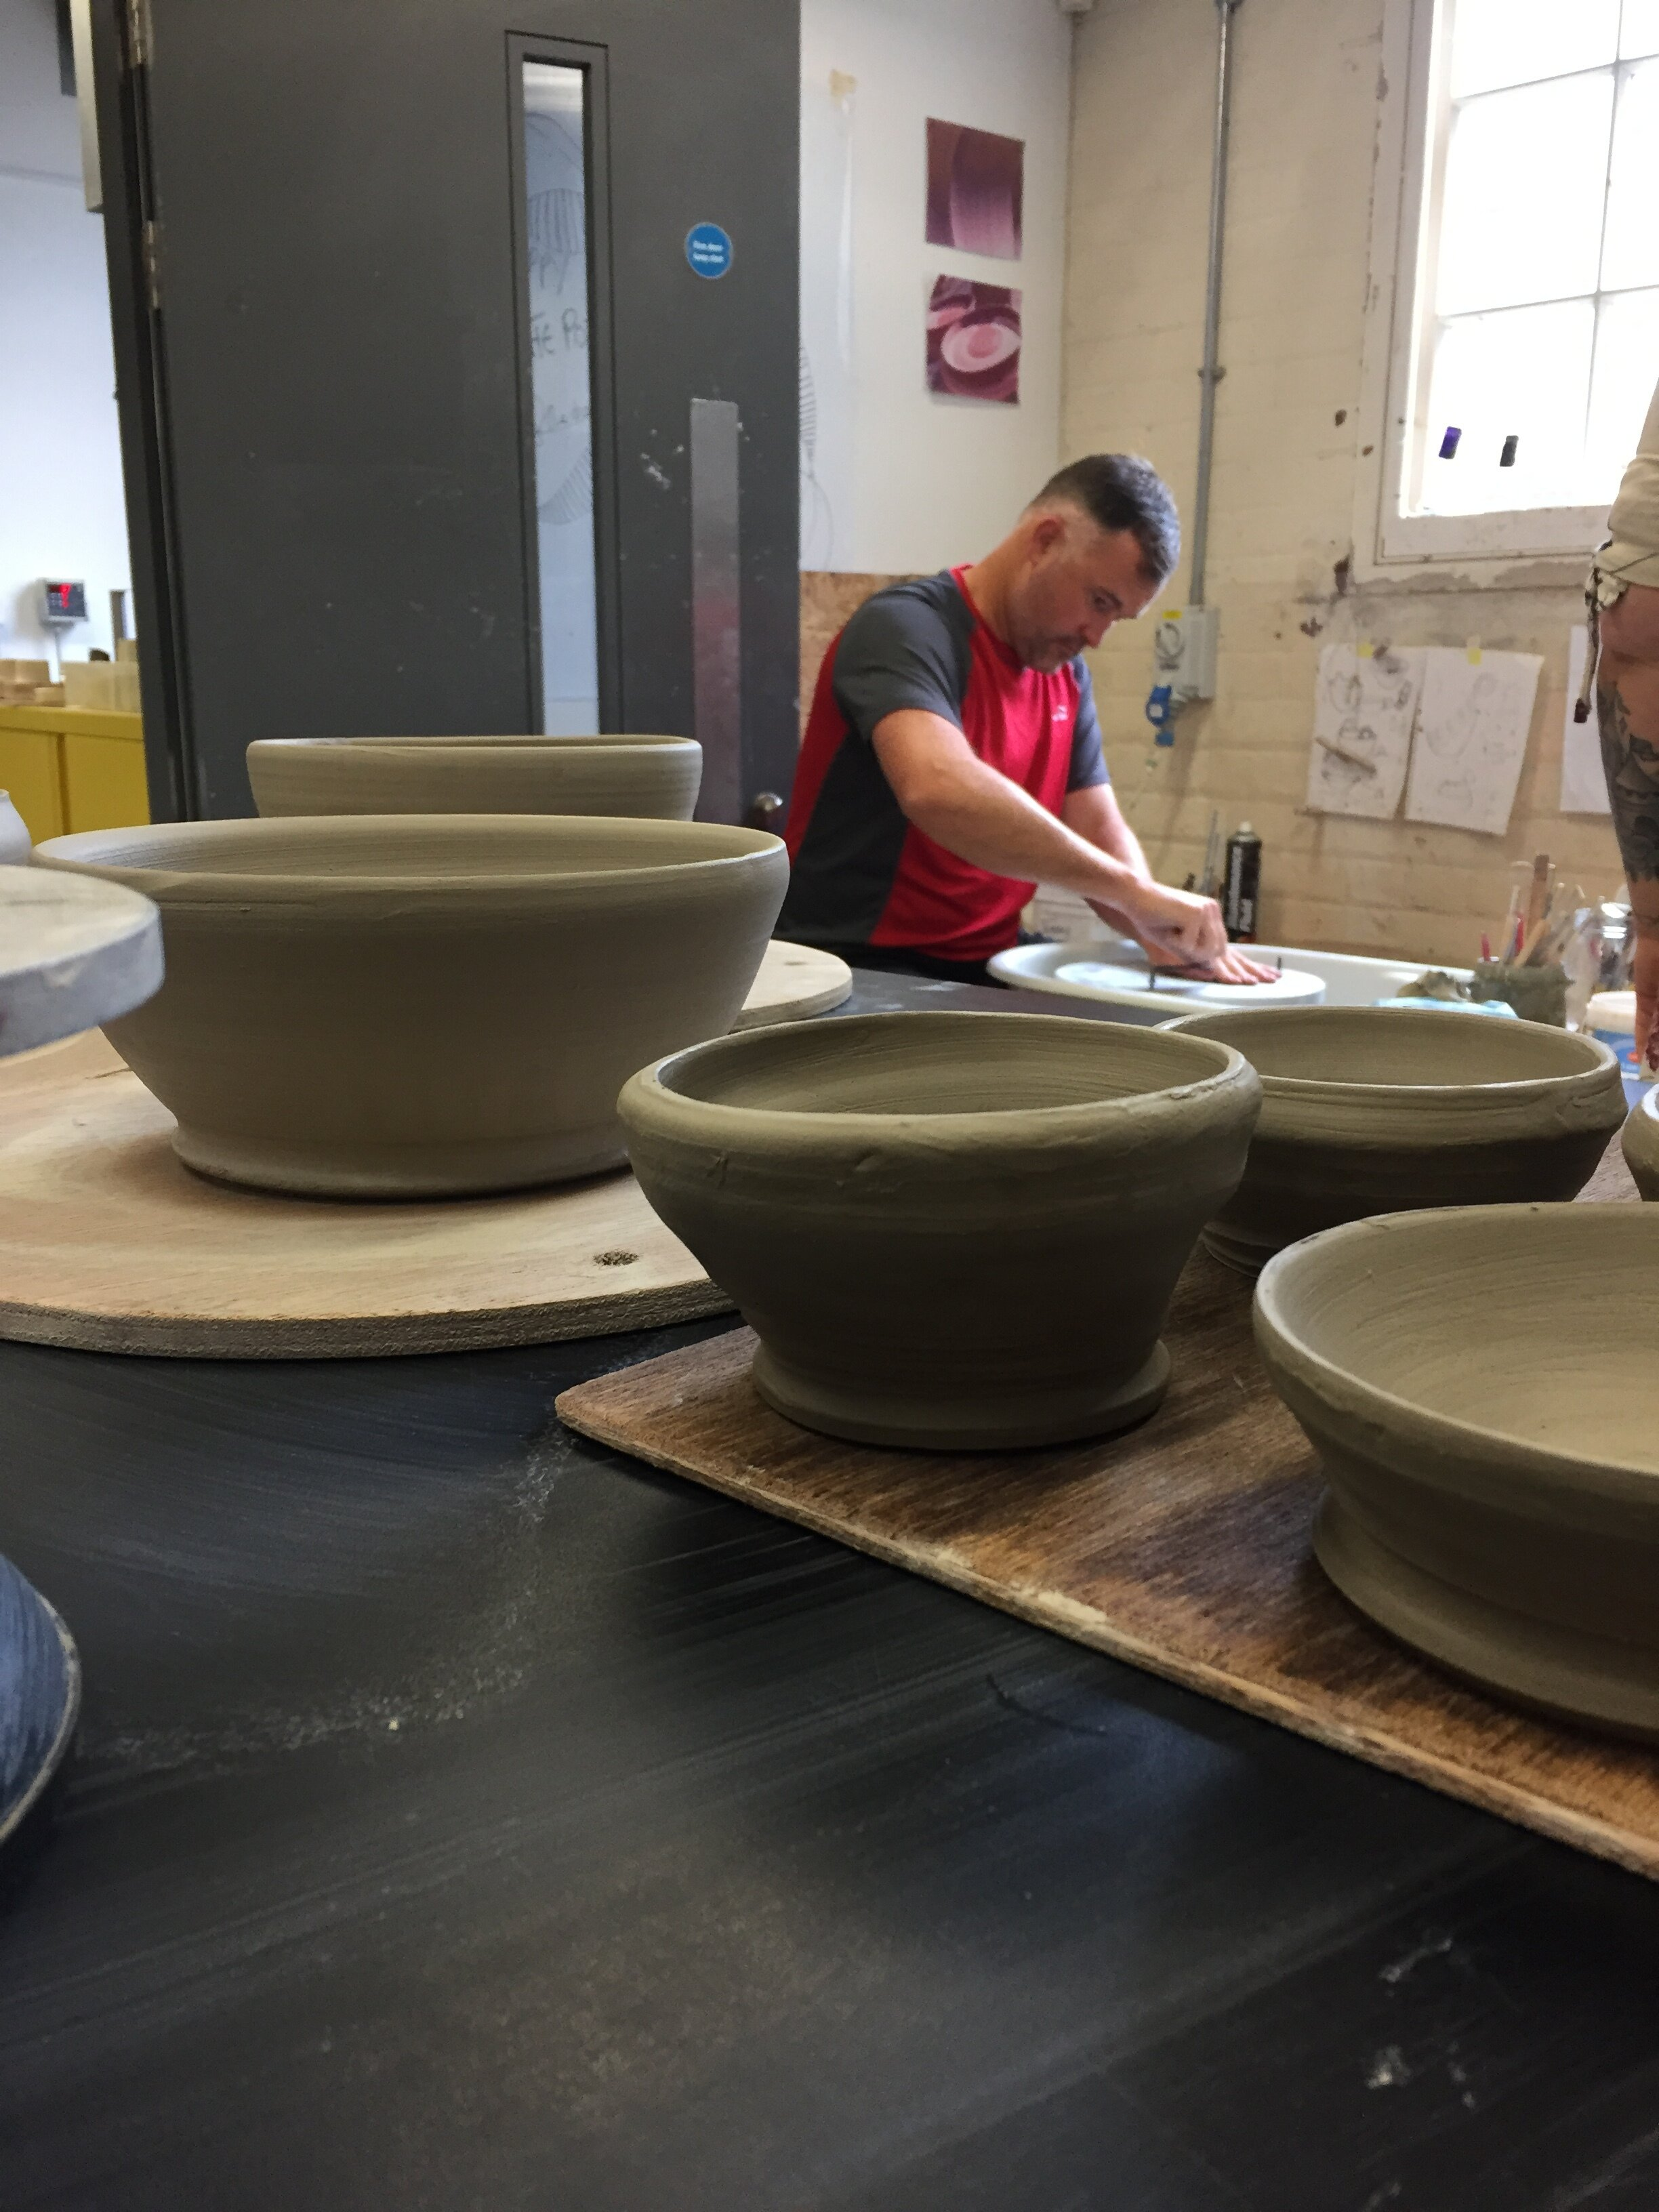 Bespoke sessions - Okay, you have learnt how to throw through one of my Throwing experiences. https://www.tweenyatthepottery.com/throwing-experiencesYou now want to design and make your own pottery. Great! Bring your ideas to Tweeny, let's discuss and make it happen.